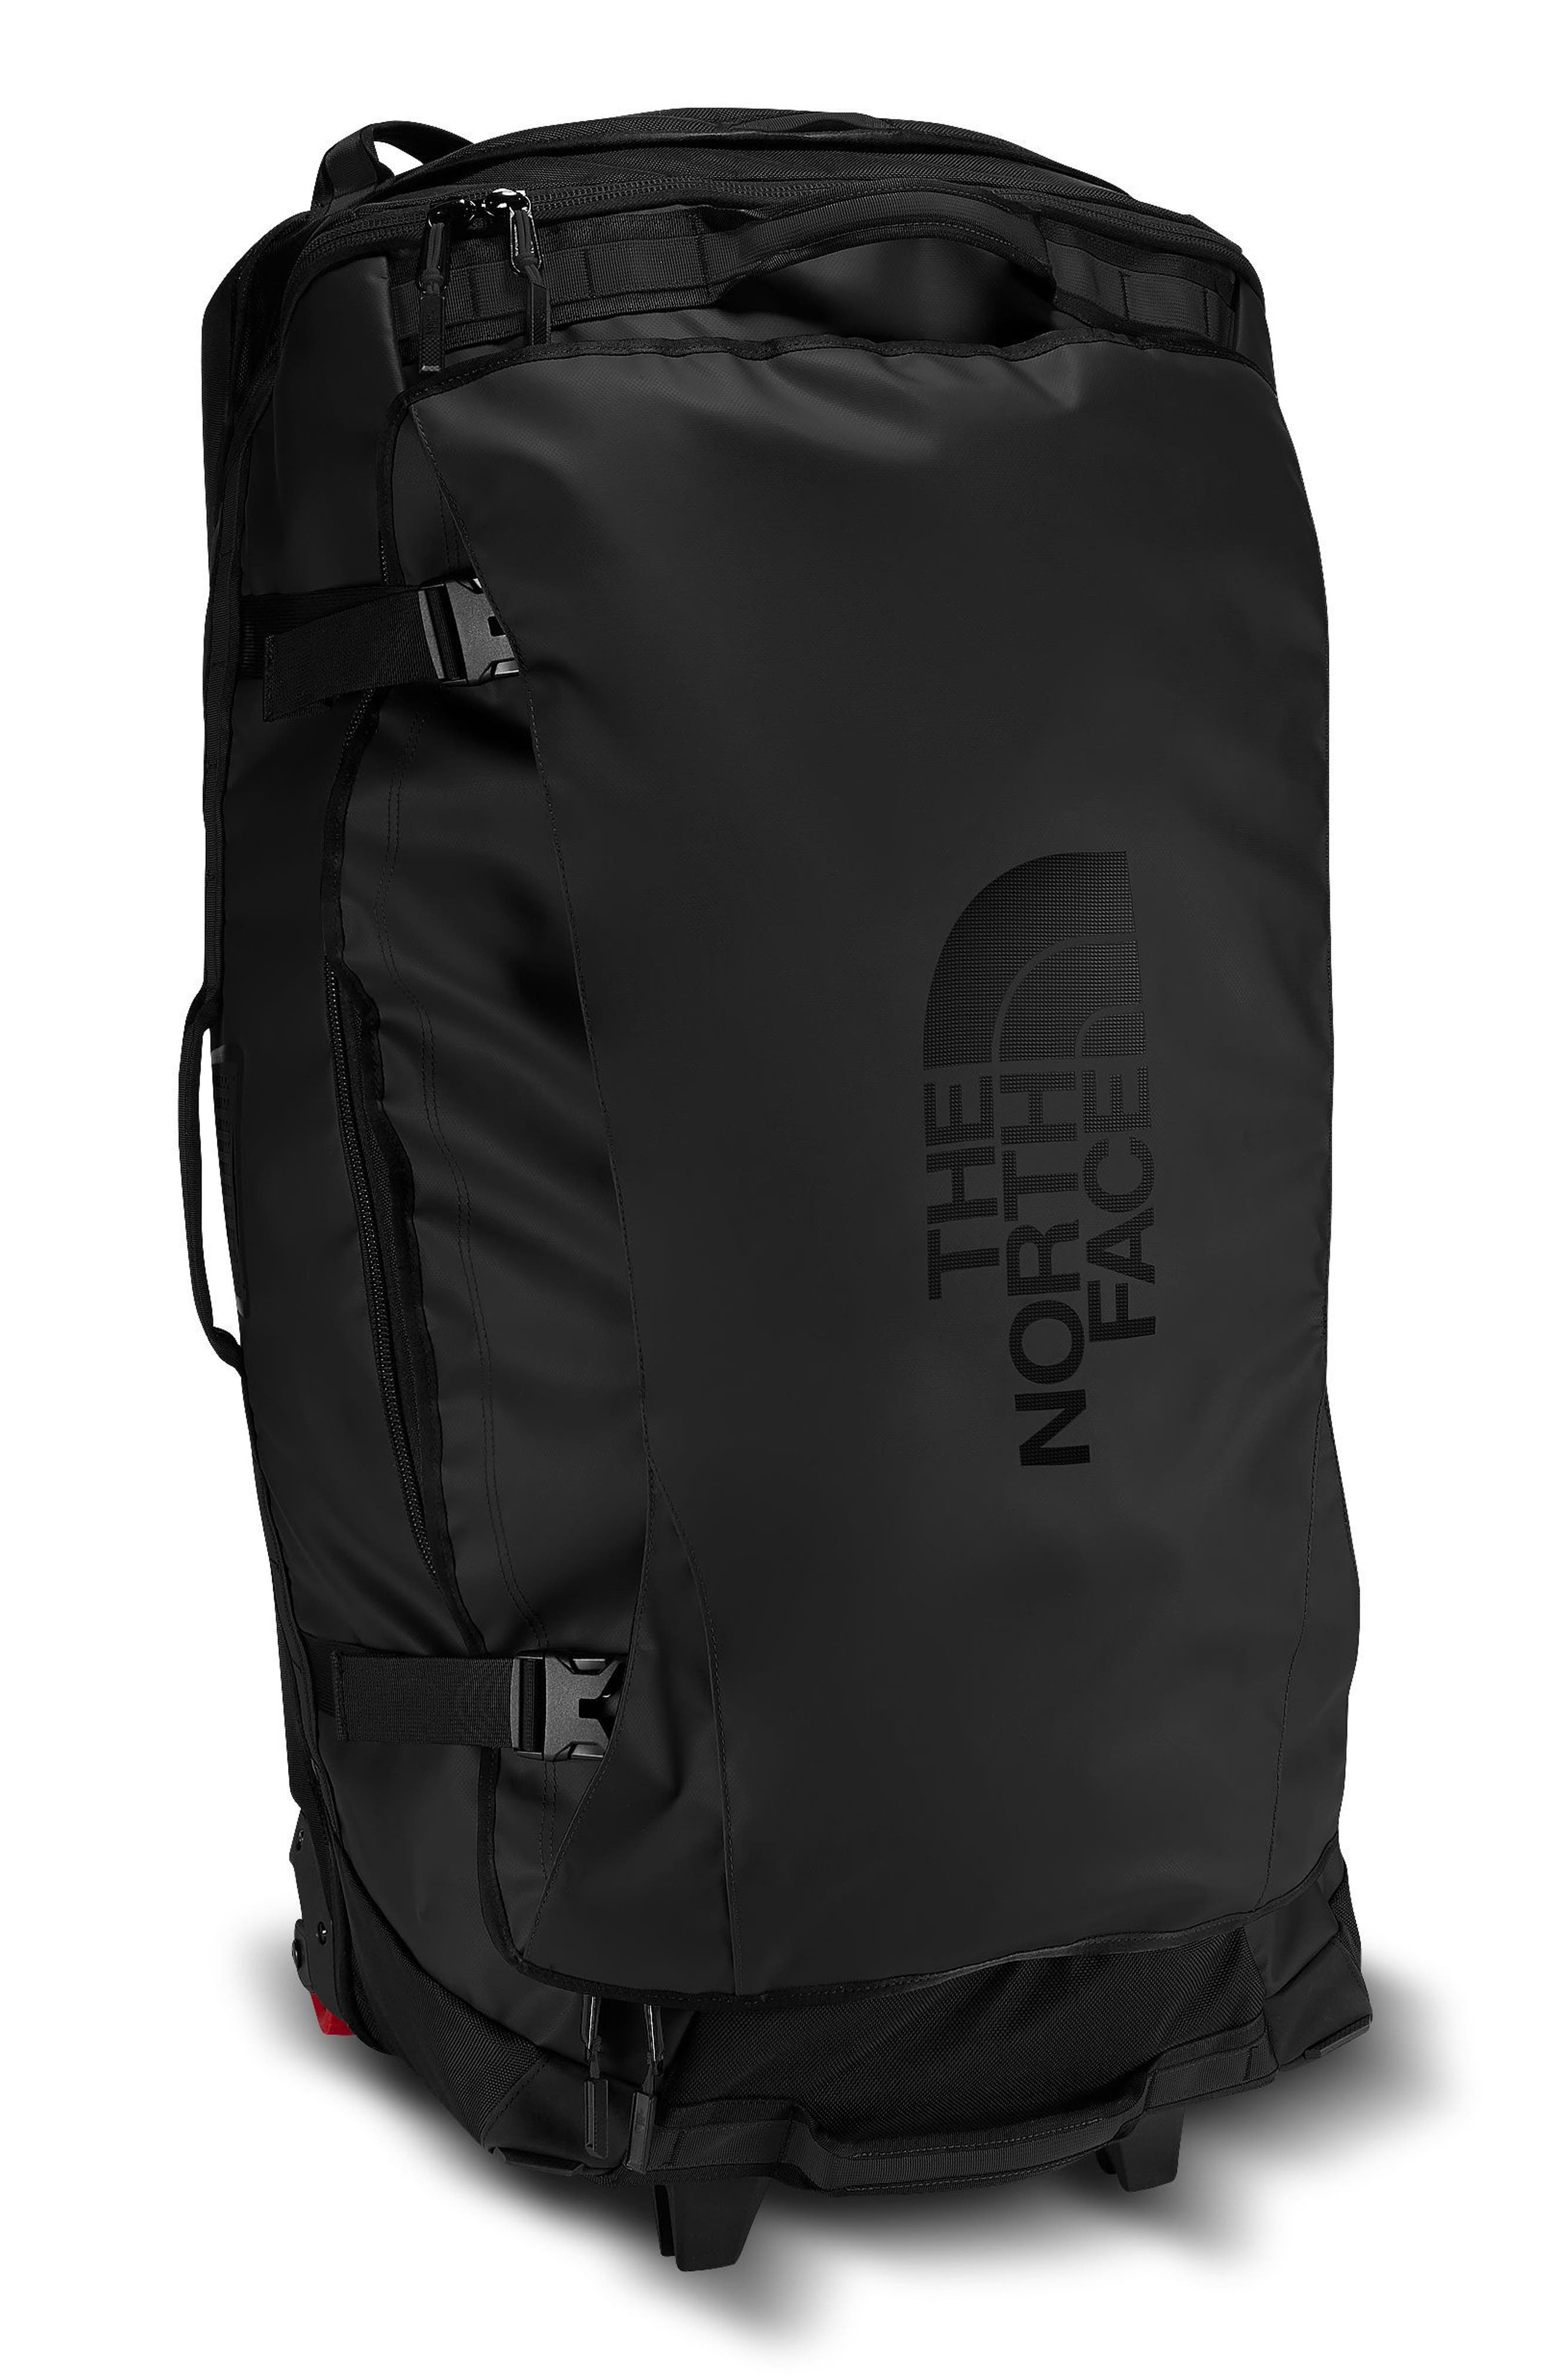 THE NORTH FACE, Rolling Thunder Wheeled Duffle Bag, Main thumbnail 1, color, TNF BLACK